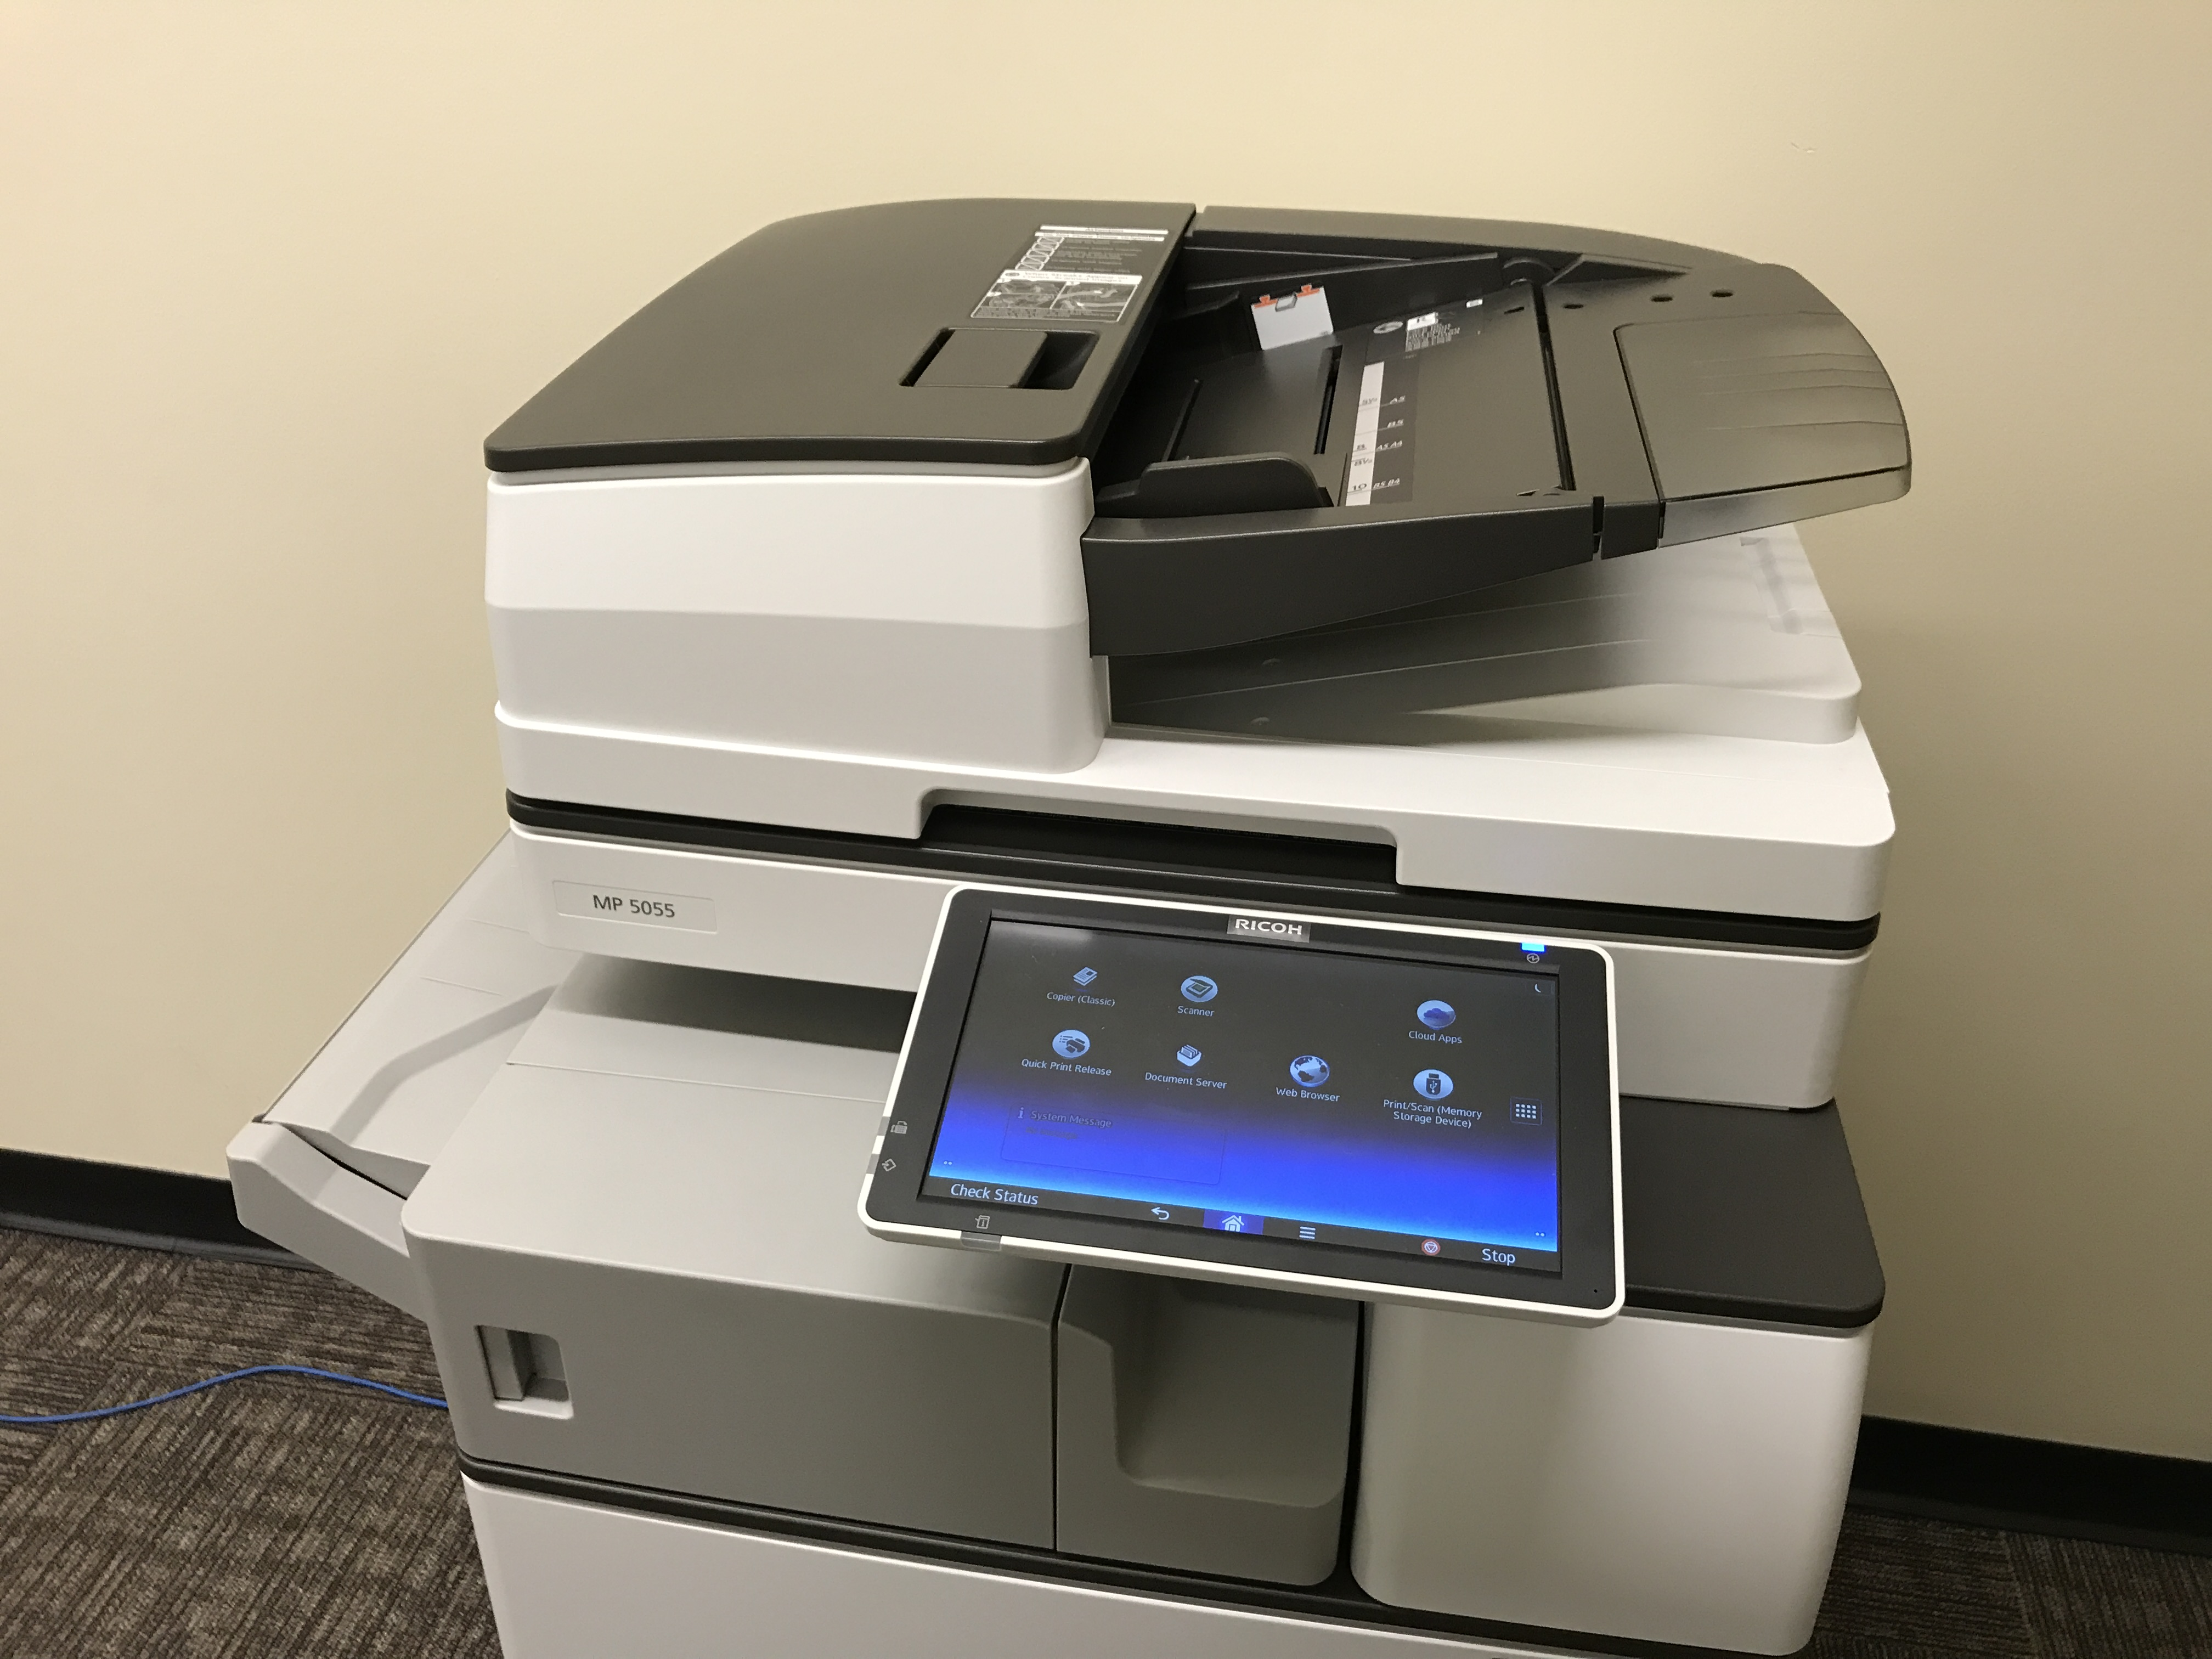 Multifunction Printers Market Latest Sales Figure Signals More Opportunities Ahead : Canon, Dell, Hewlett-Packard Company